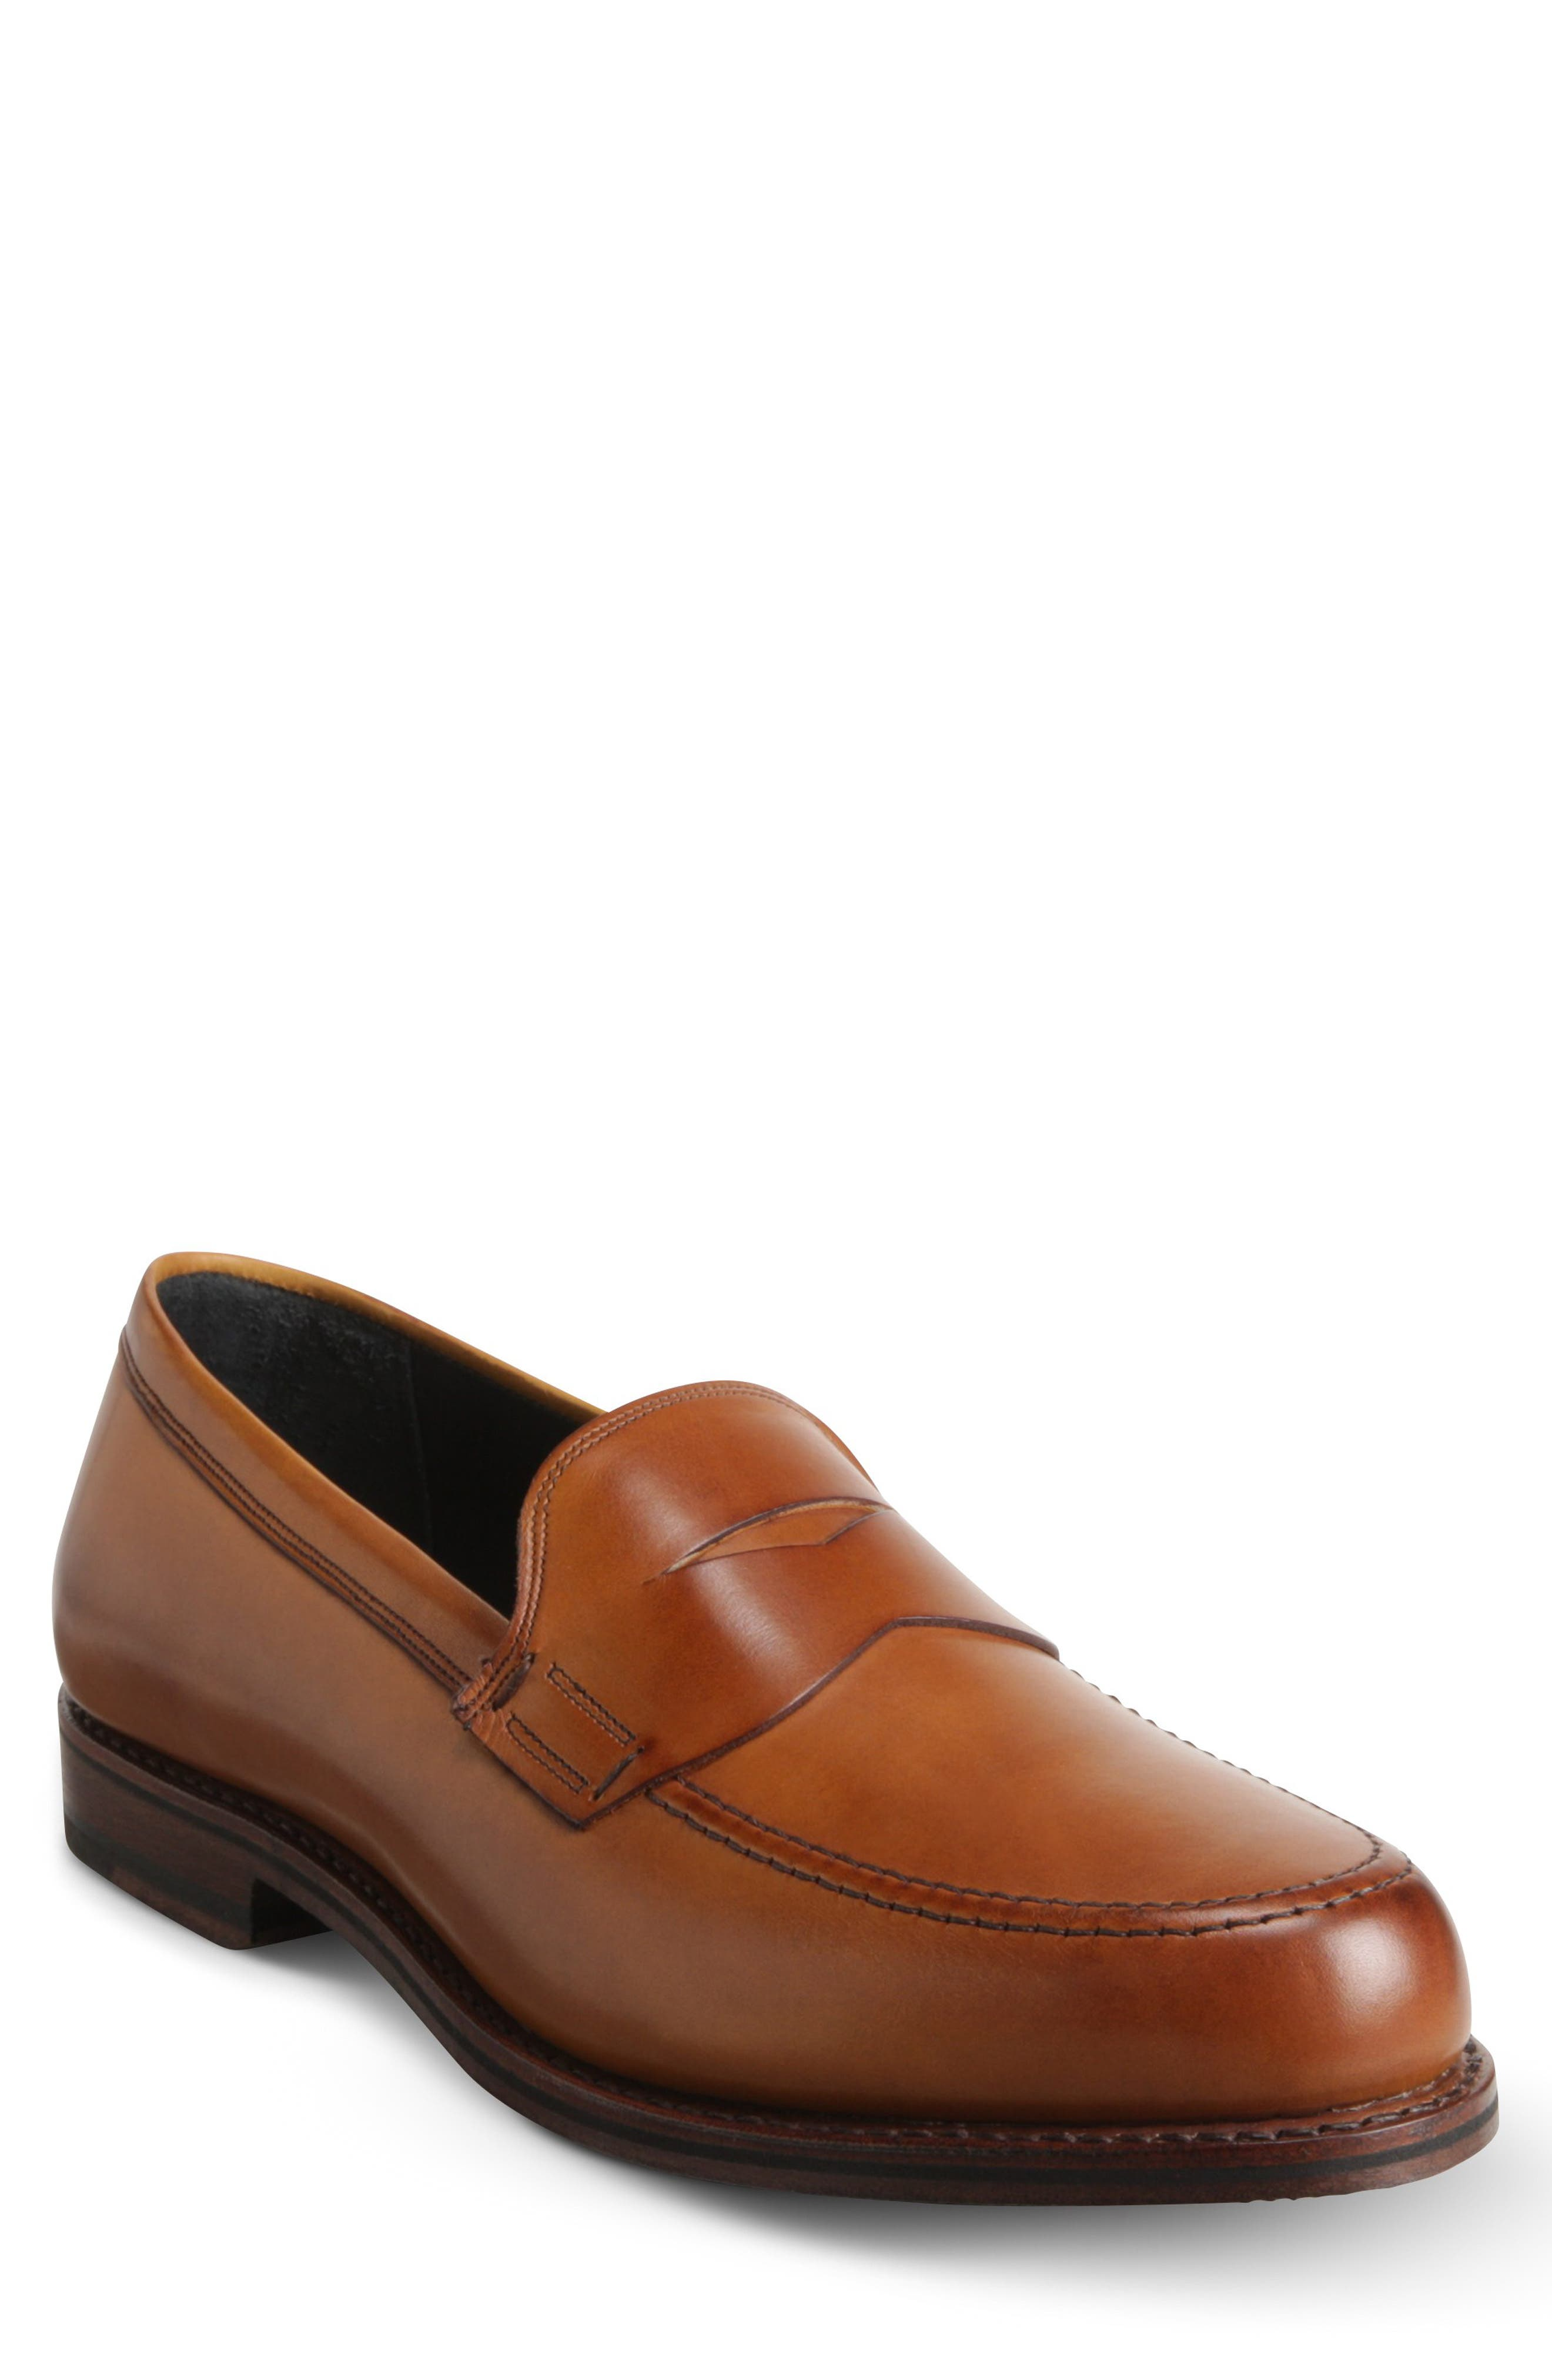 Wooster Street Penny Loafer